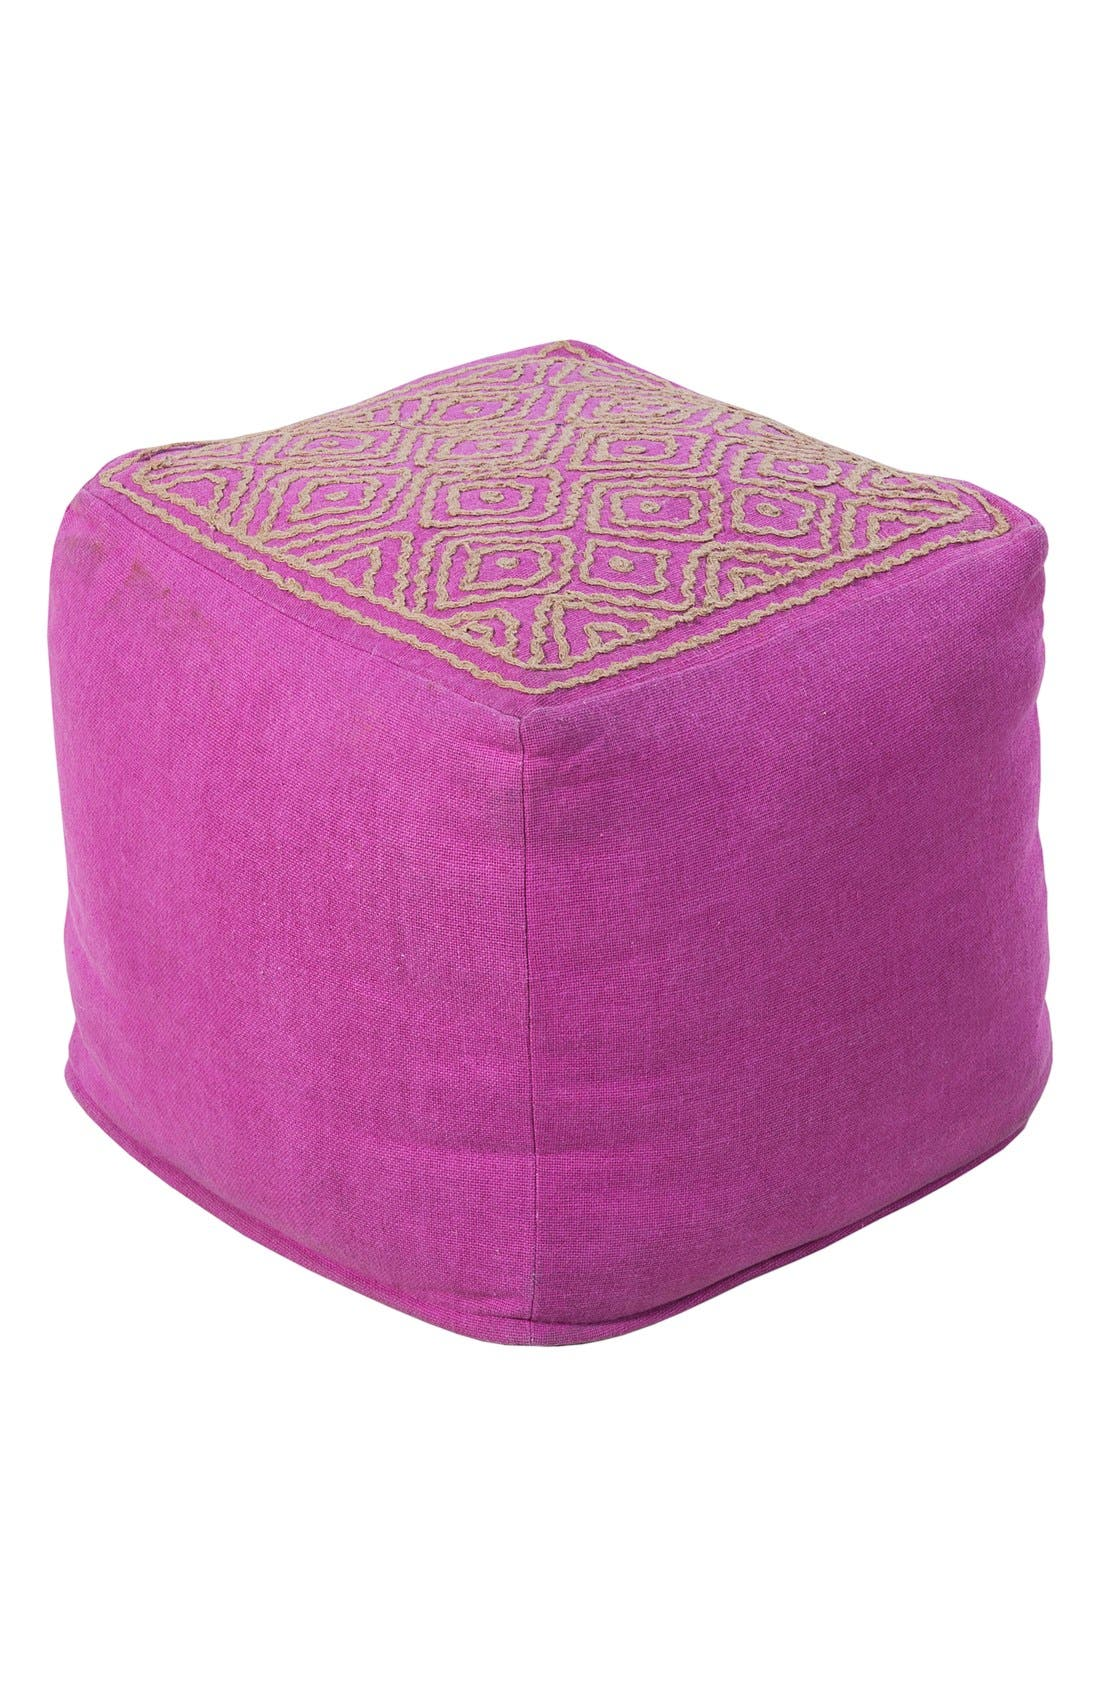 Surya Home 'Atlas' Pouf